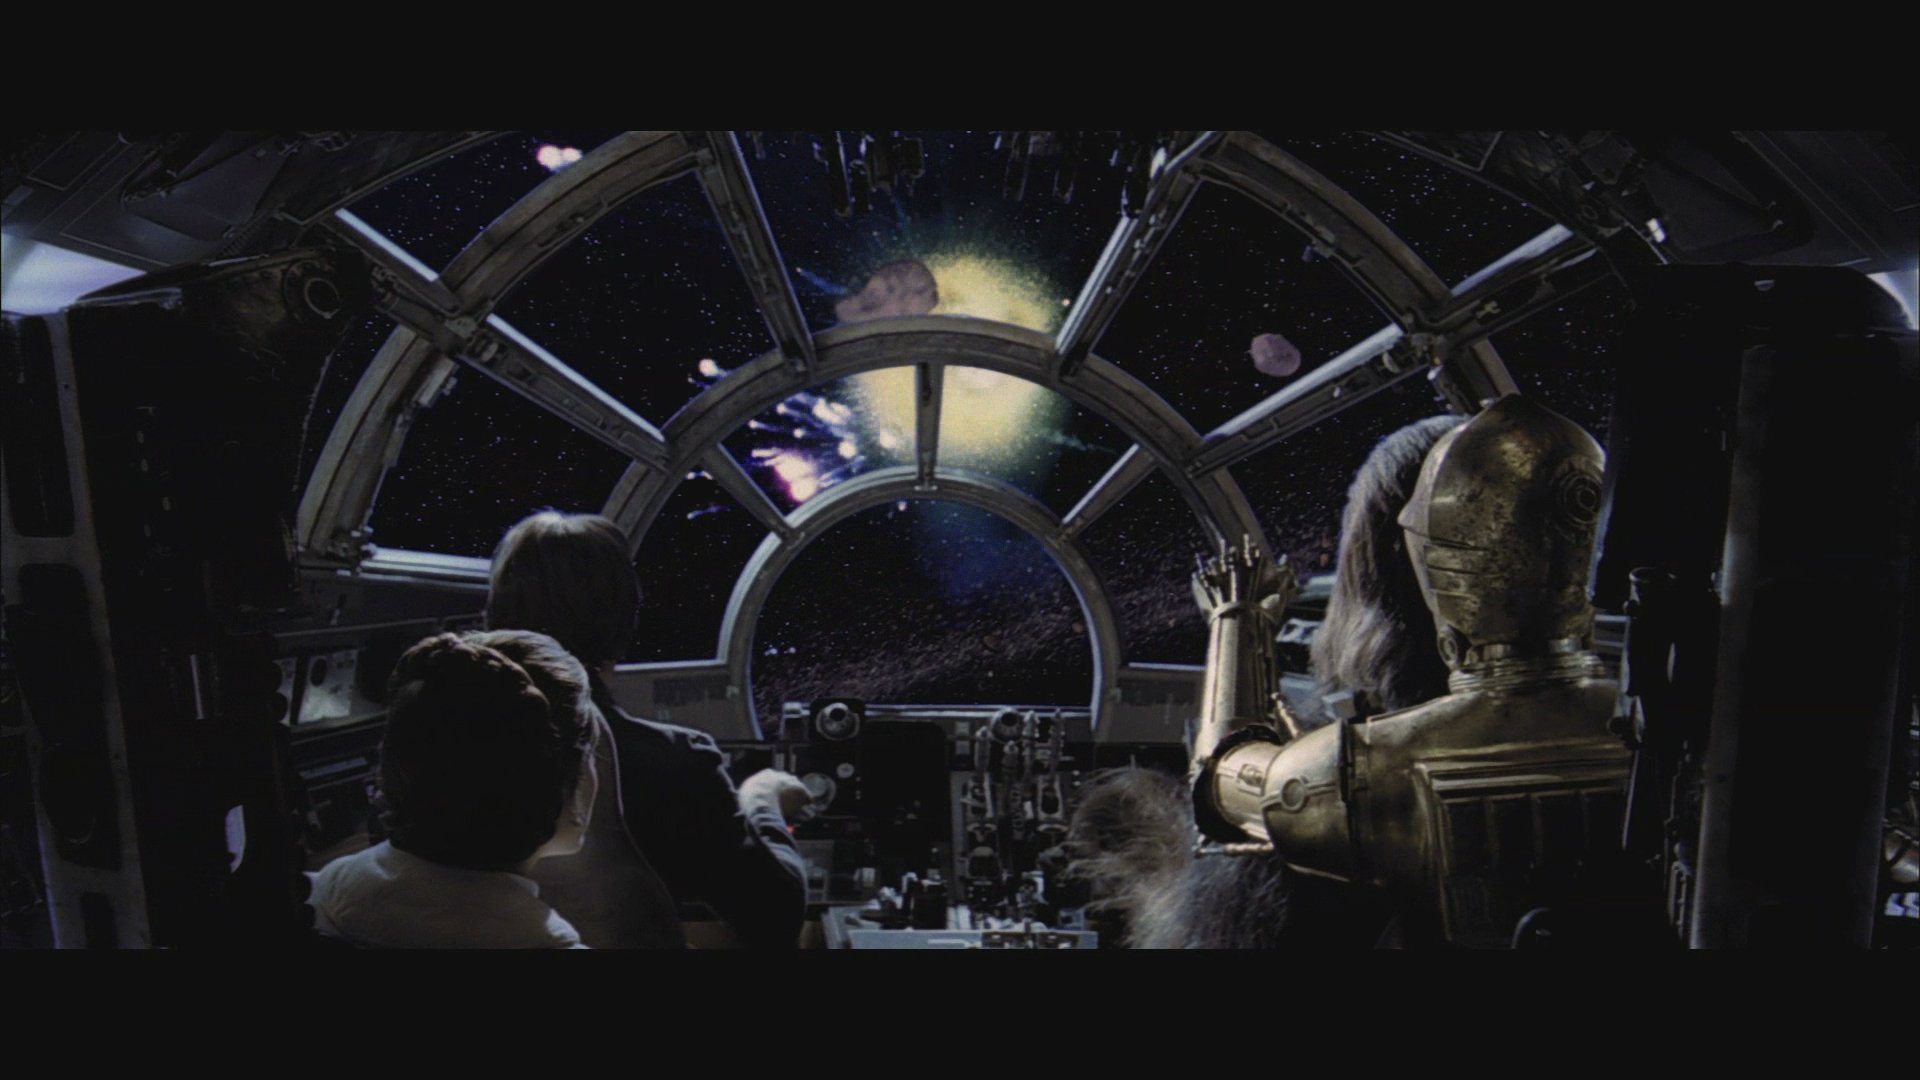 ... not actually going INTO an asteroid field are you?' a fab wallpaper